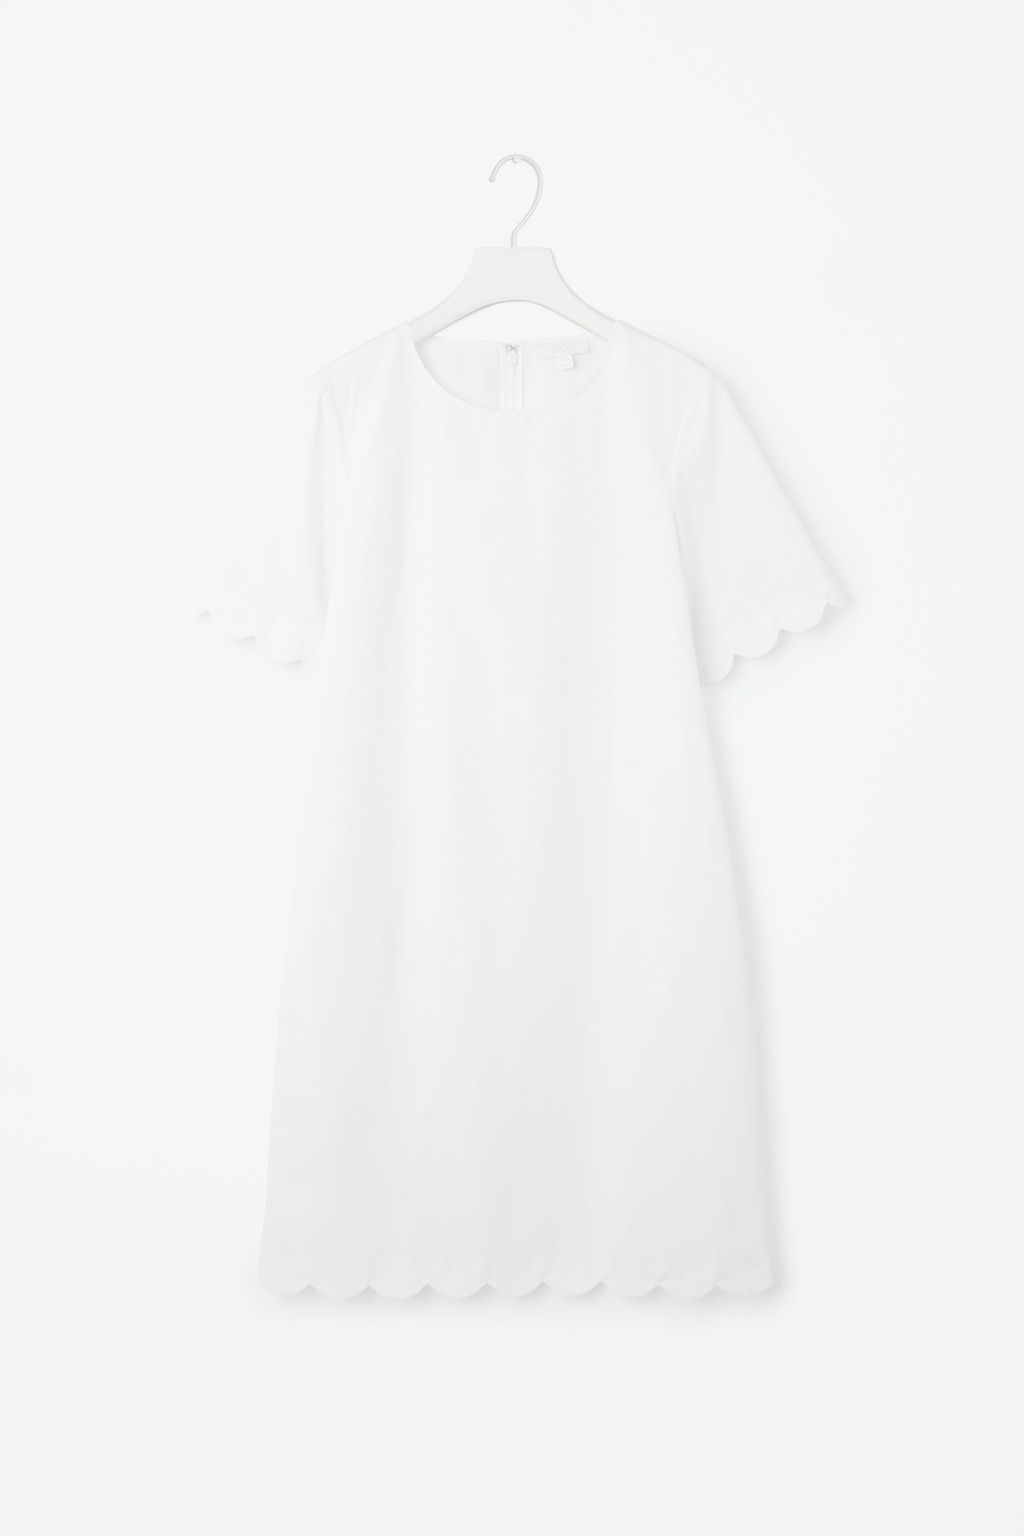 Scalloped Dress - style: shift; length: mid thigh; pattern: plain; predominant colour: white; occasions: evening, creative work; fit: soft a-line; fibres: polyester/polyamide - 100%; neckline: crew; sleeve length: short sleeve; sleeve style: standard; texture group: crepes; pattern type: fabric; season: s/s 2016; wardrobe: investment